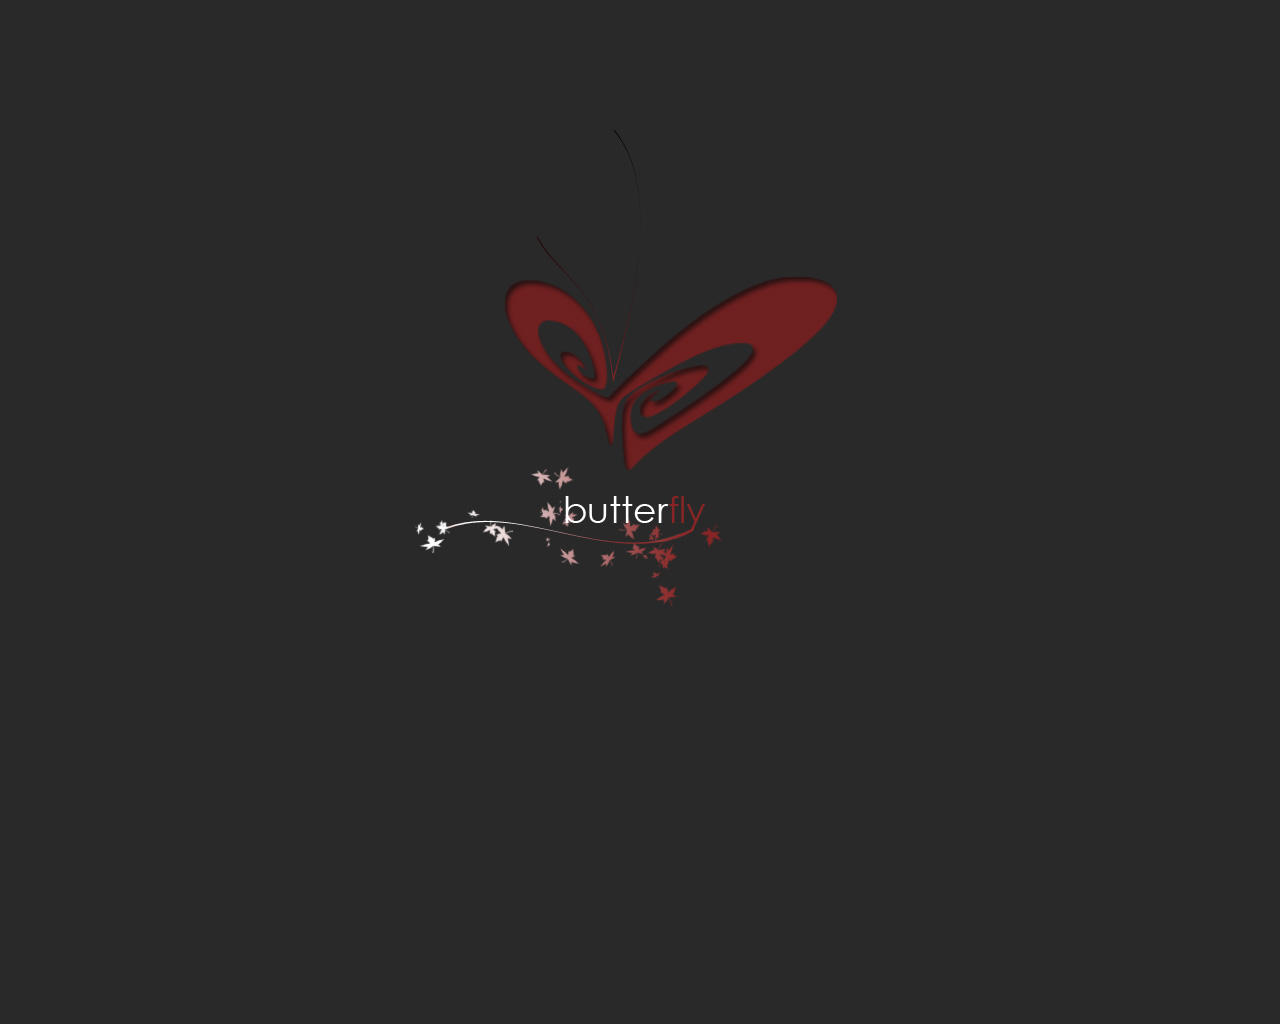 Butterfly by The-Chez